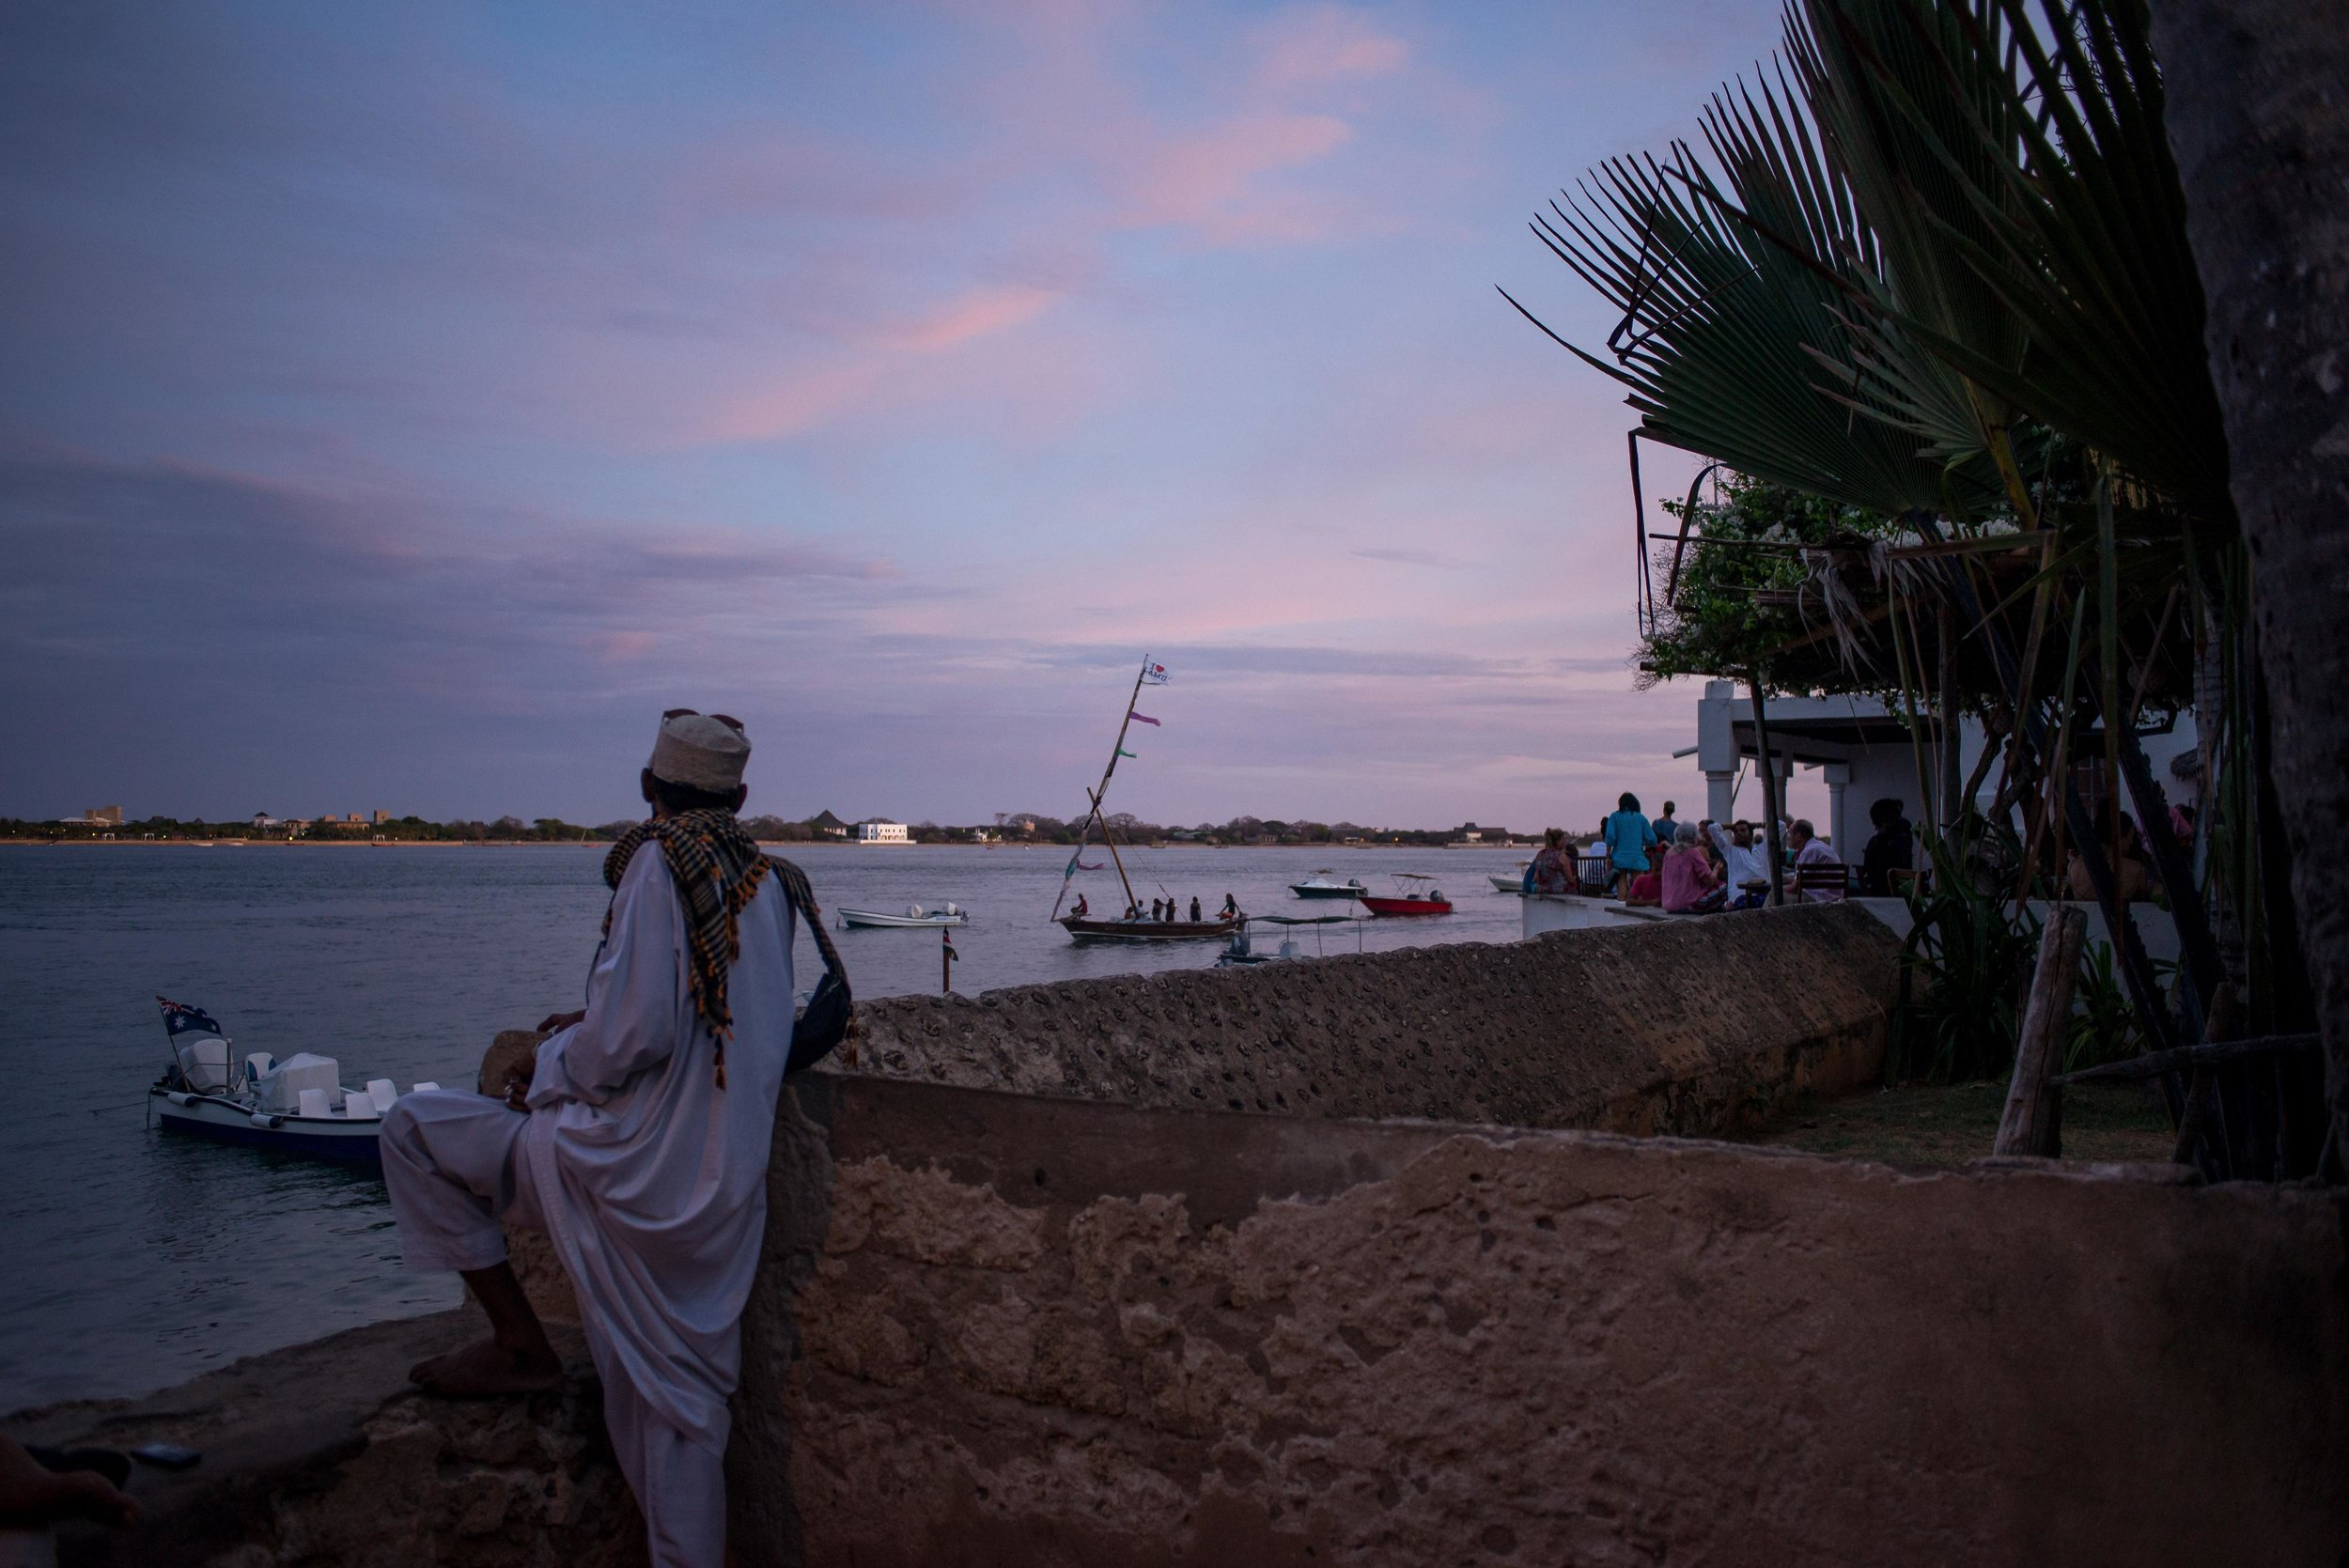 A man watches the sunset in Lamu, Kenya. March 2018.